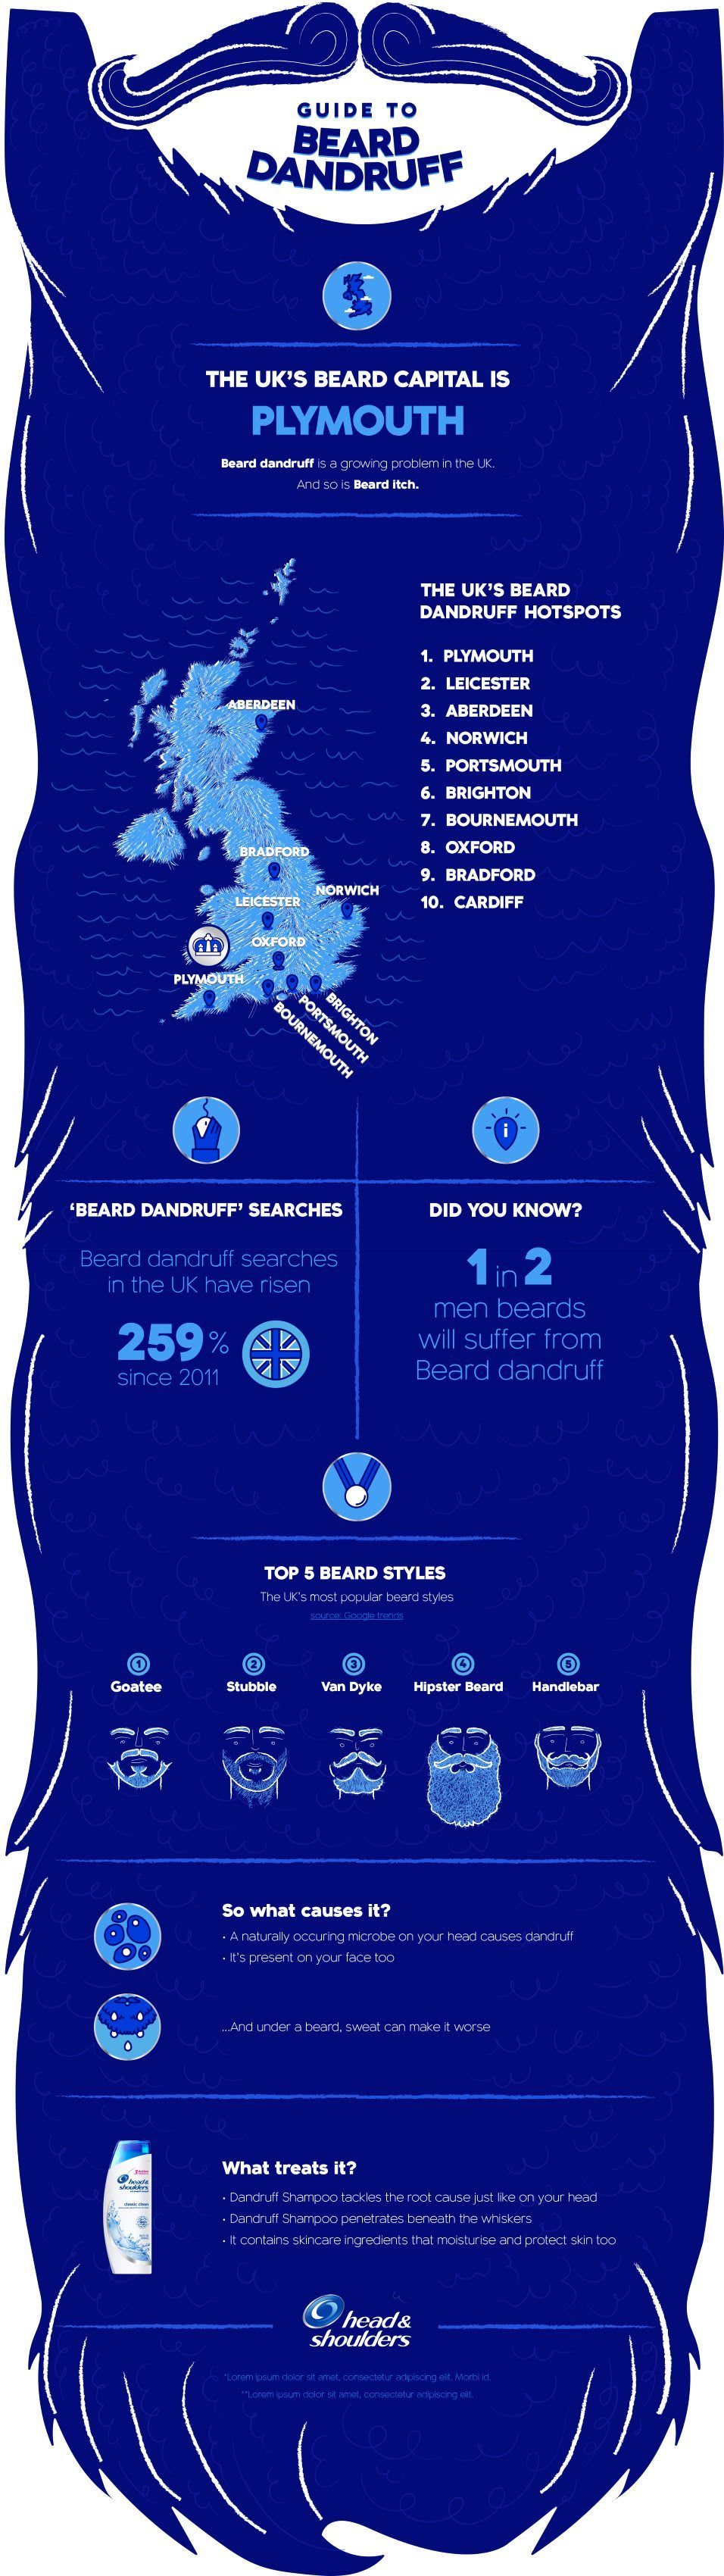 Beard Dandruff In The Uk – The Uk's Beard Dandruff Hotspots Revealed